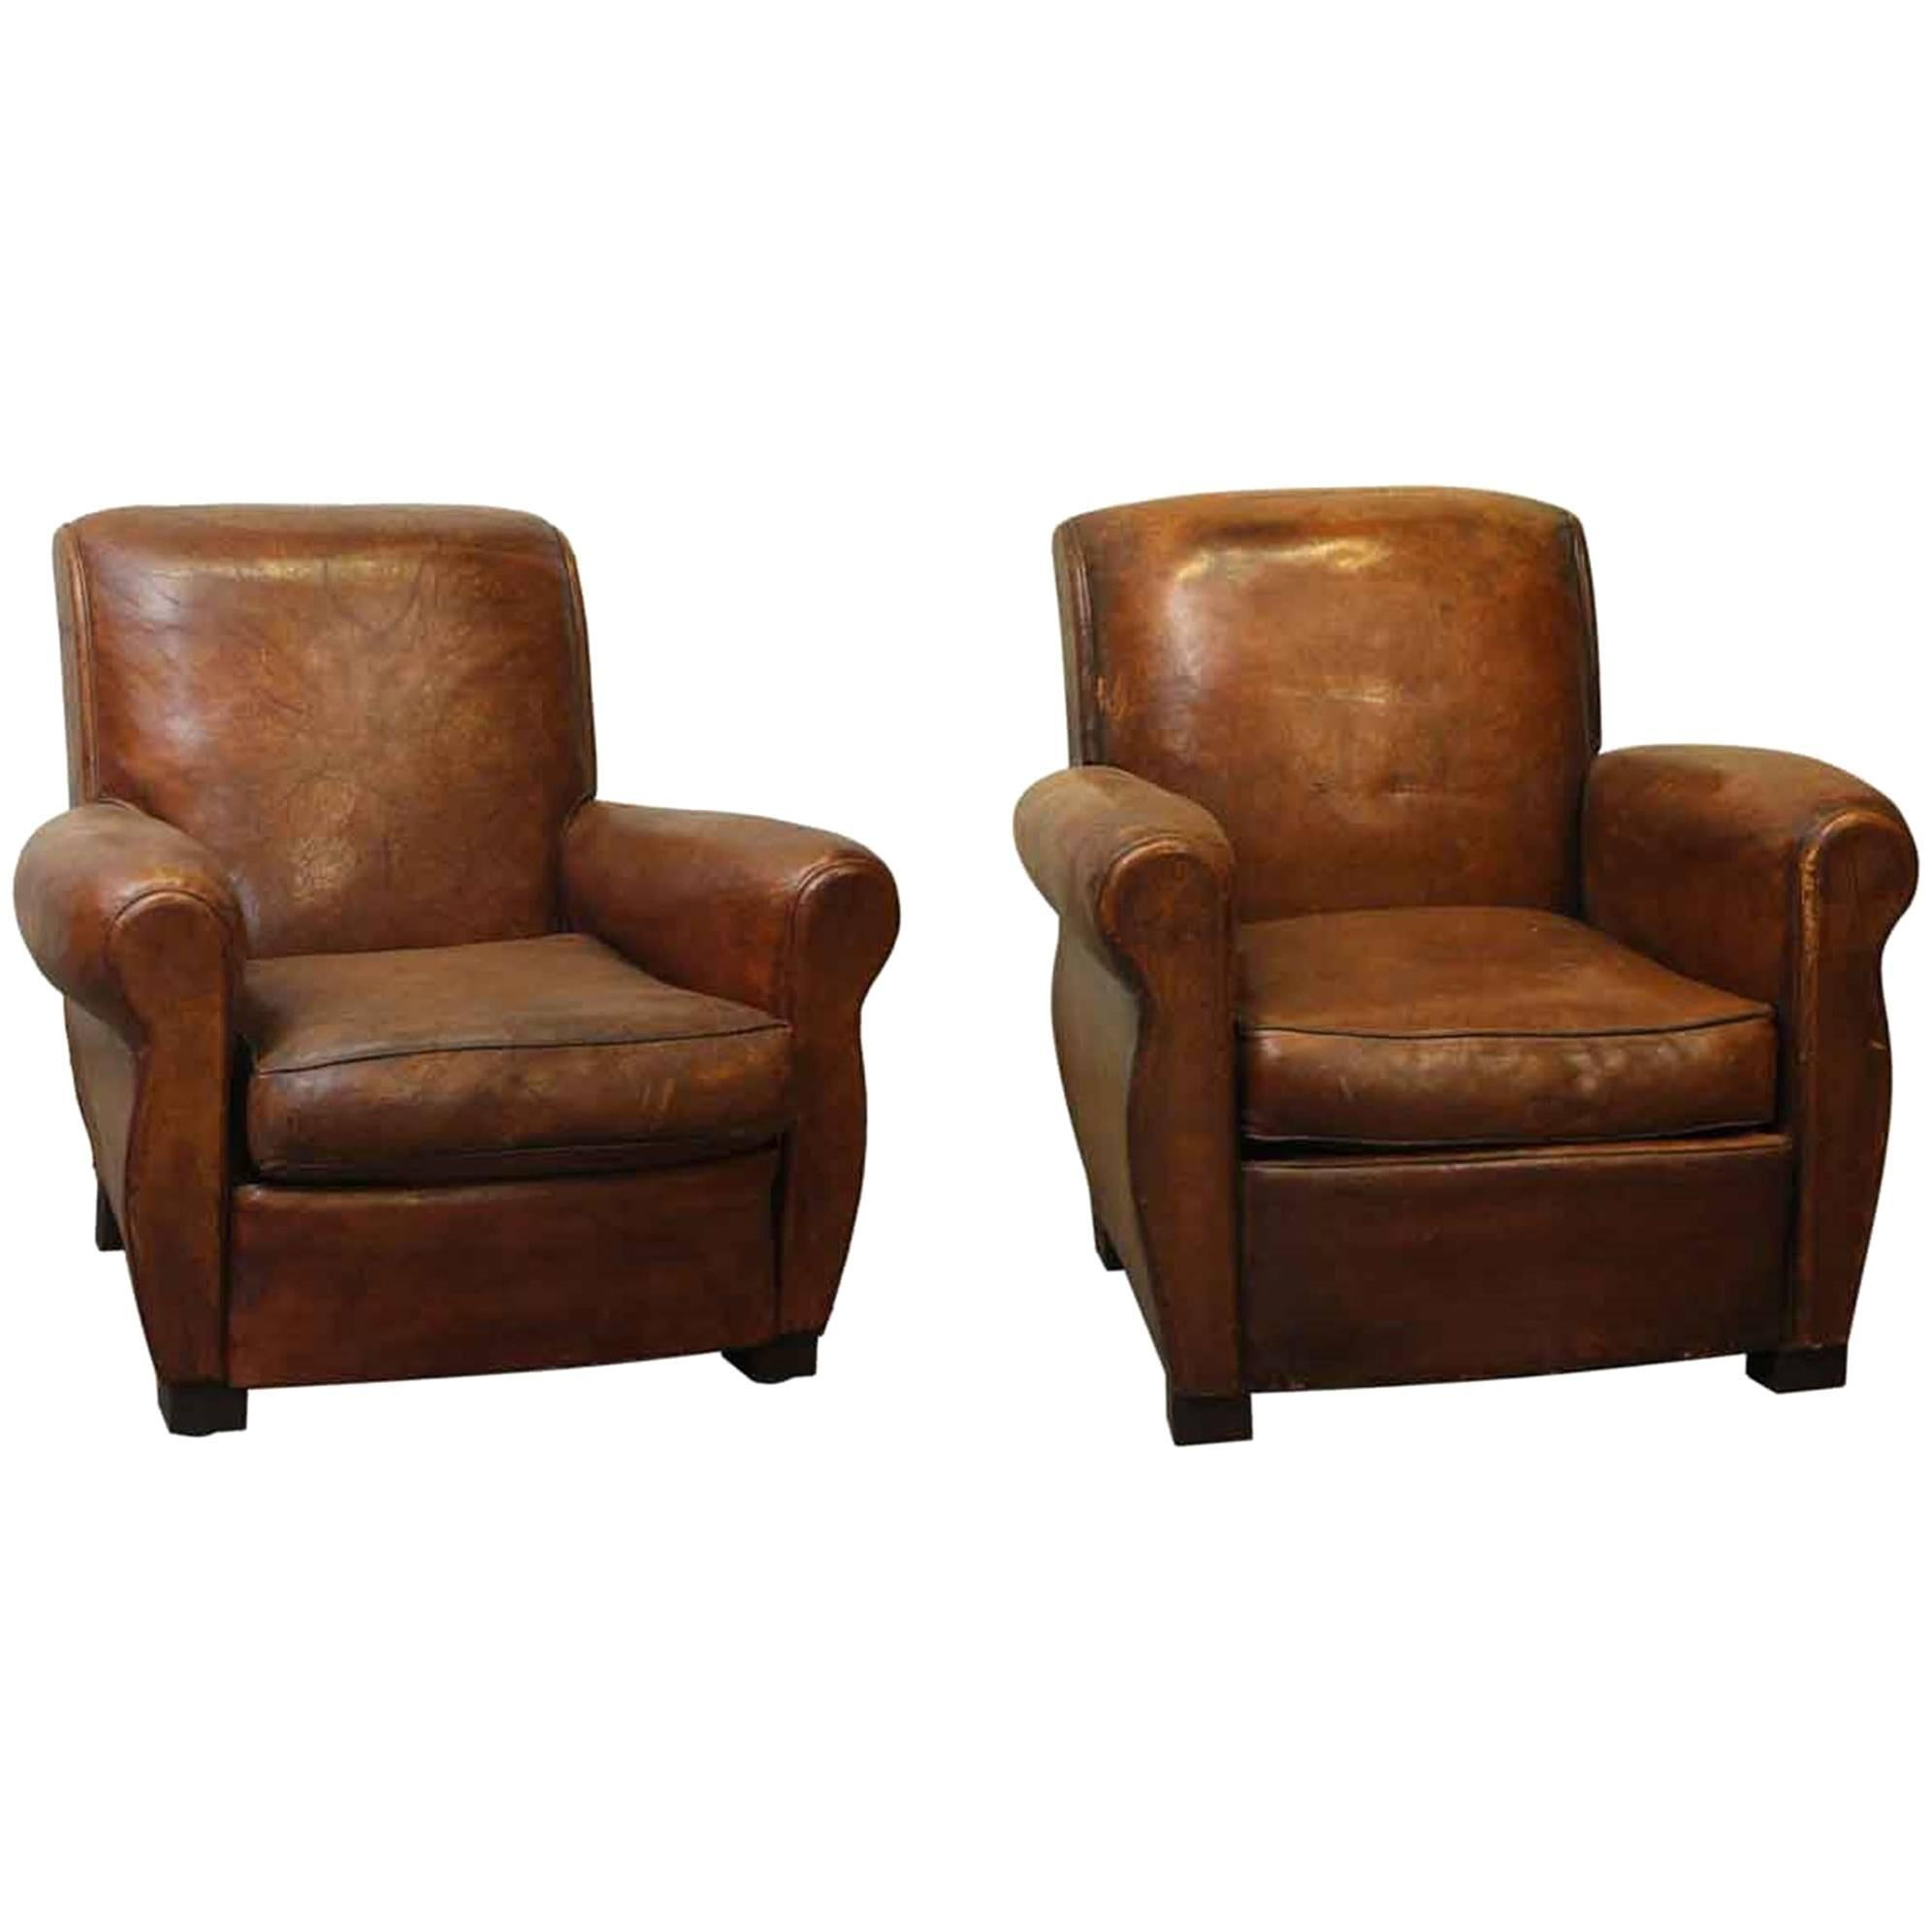 1980s French Vintage Pair Of Leather Vintage Club Chairs 1